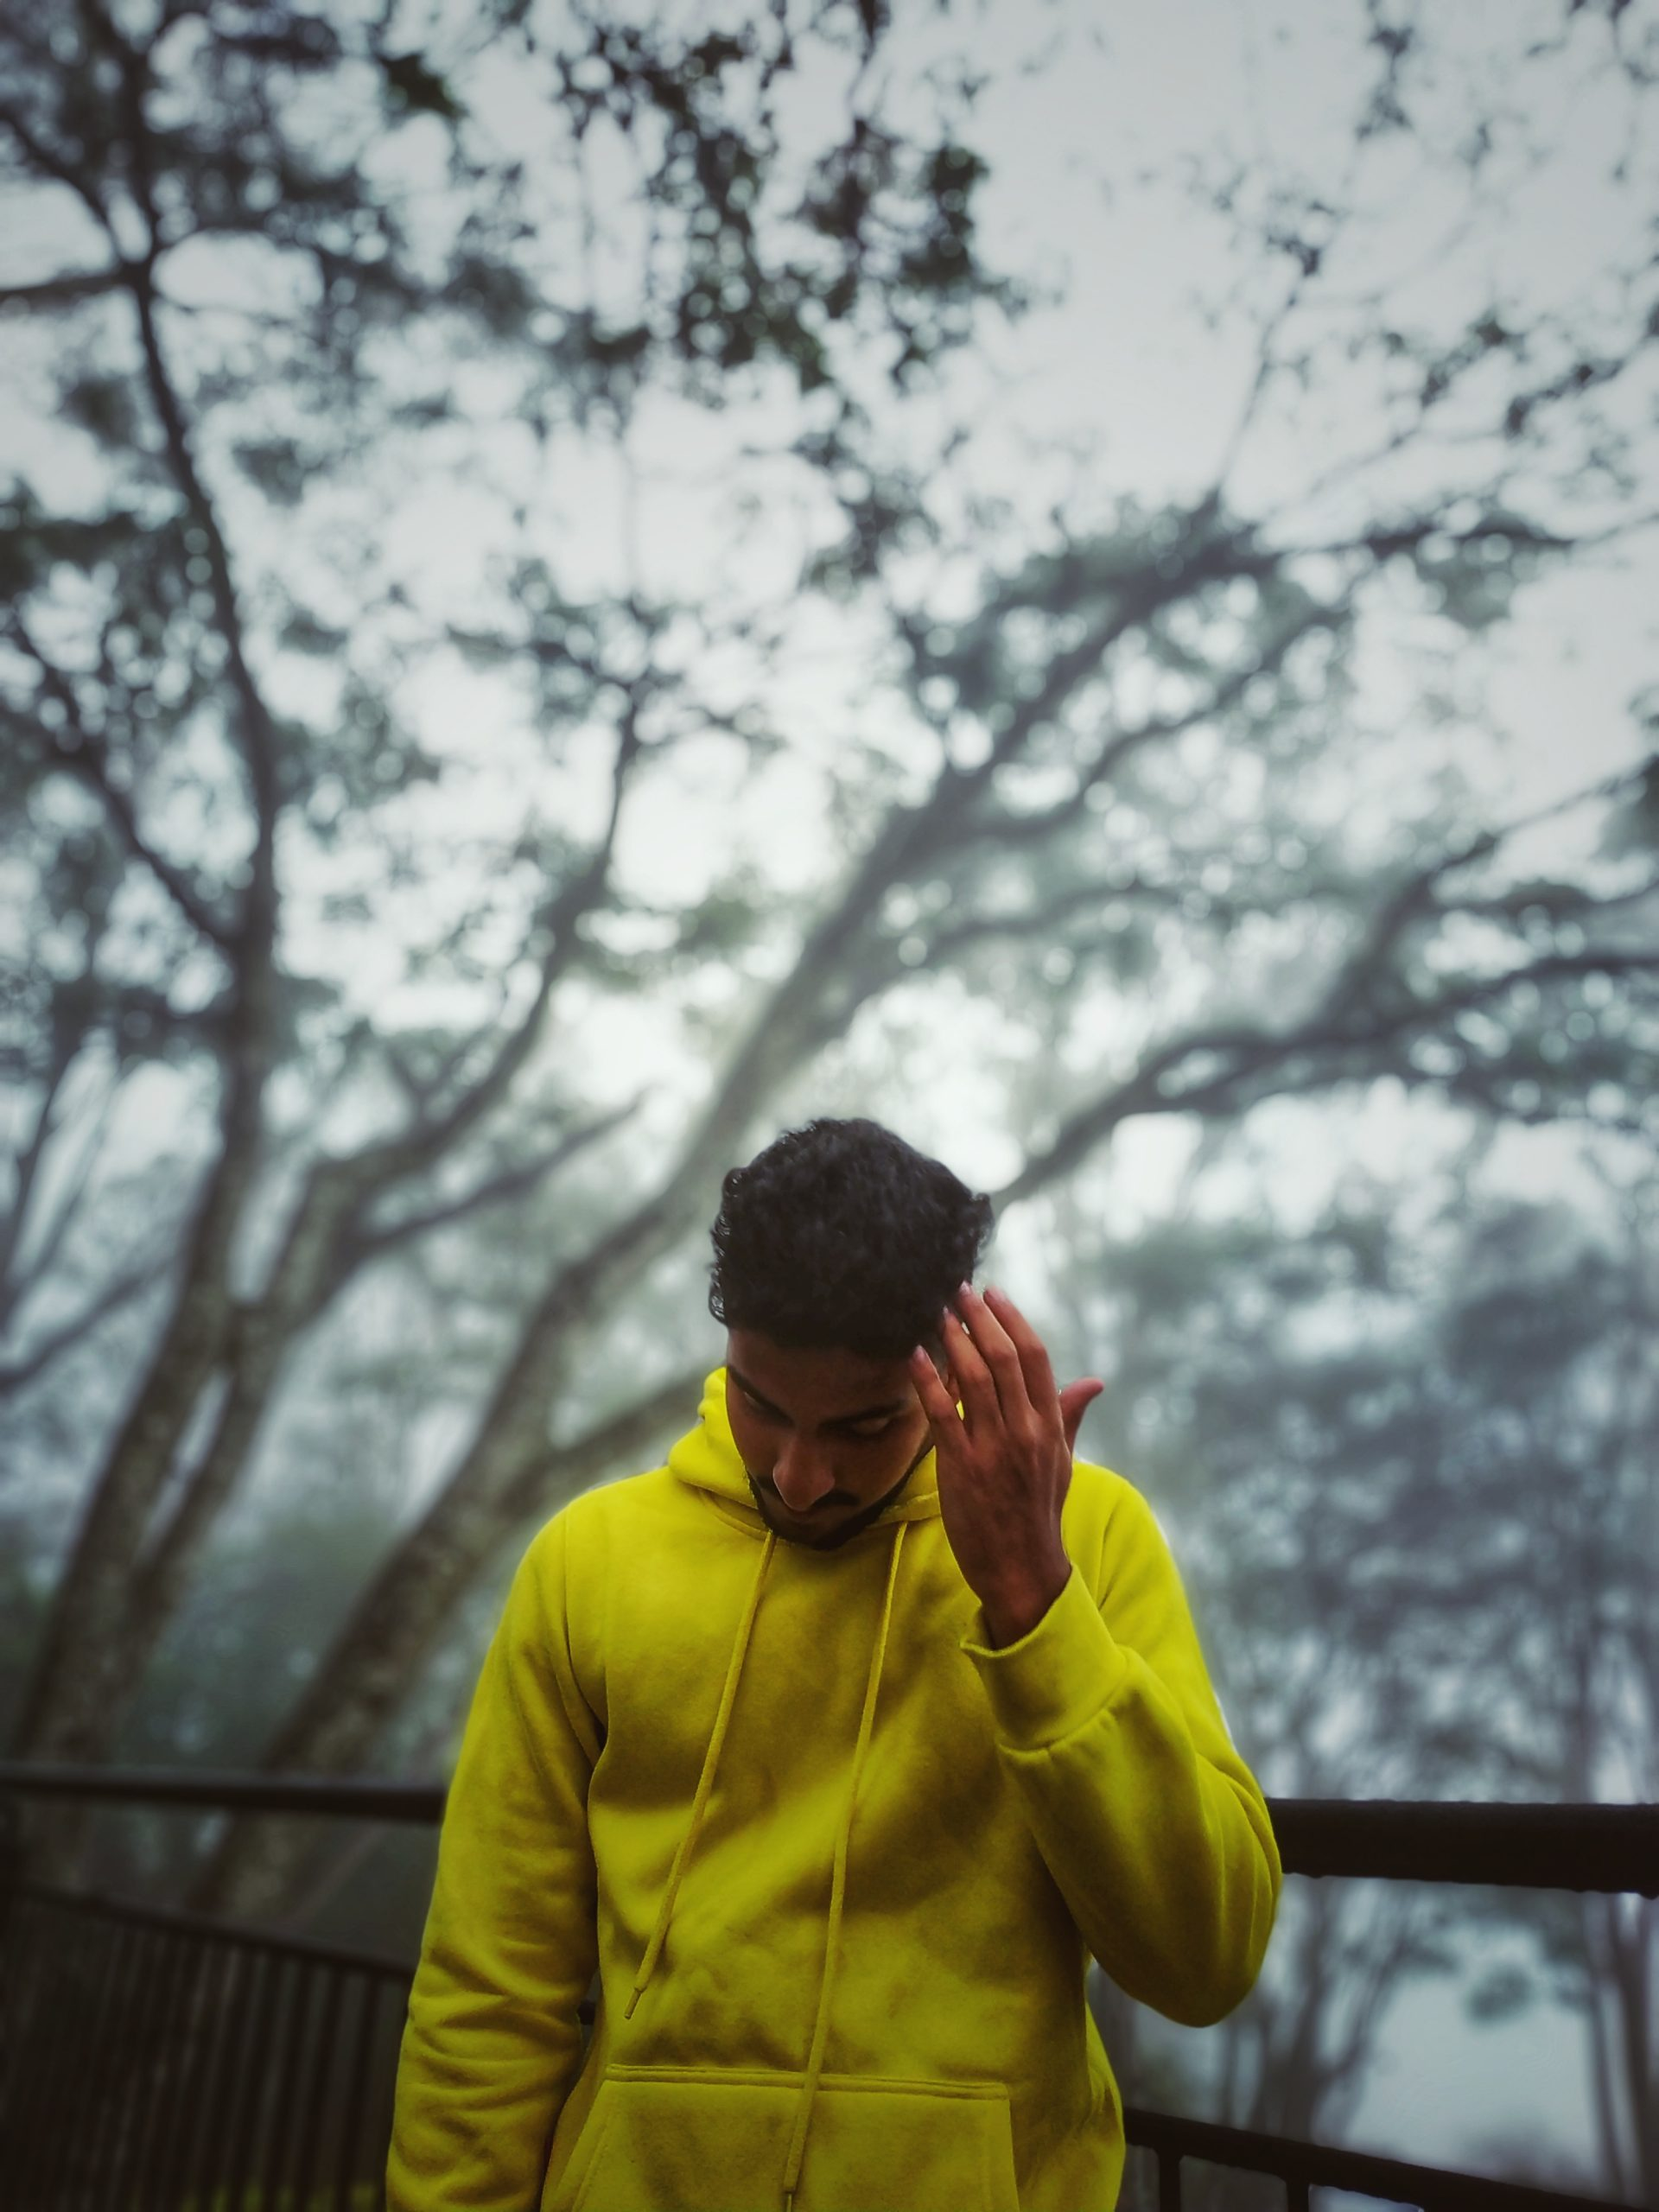 Man wearing a yellow sweater